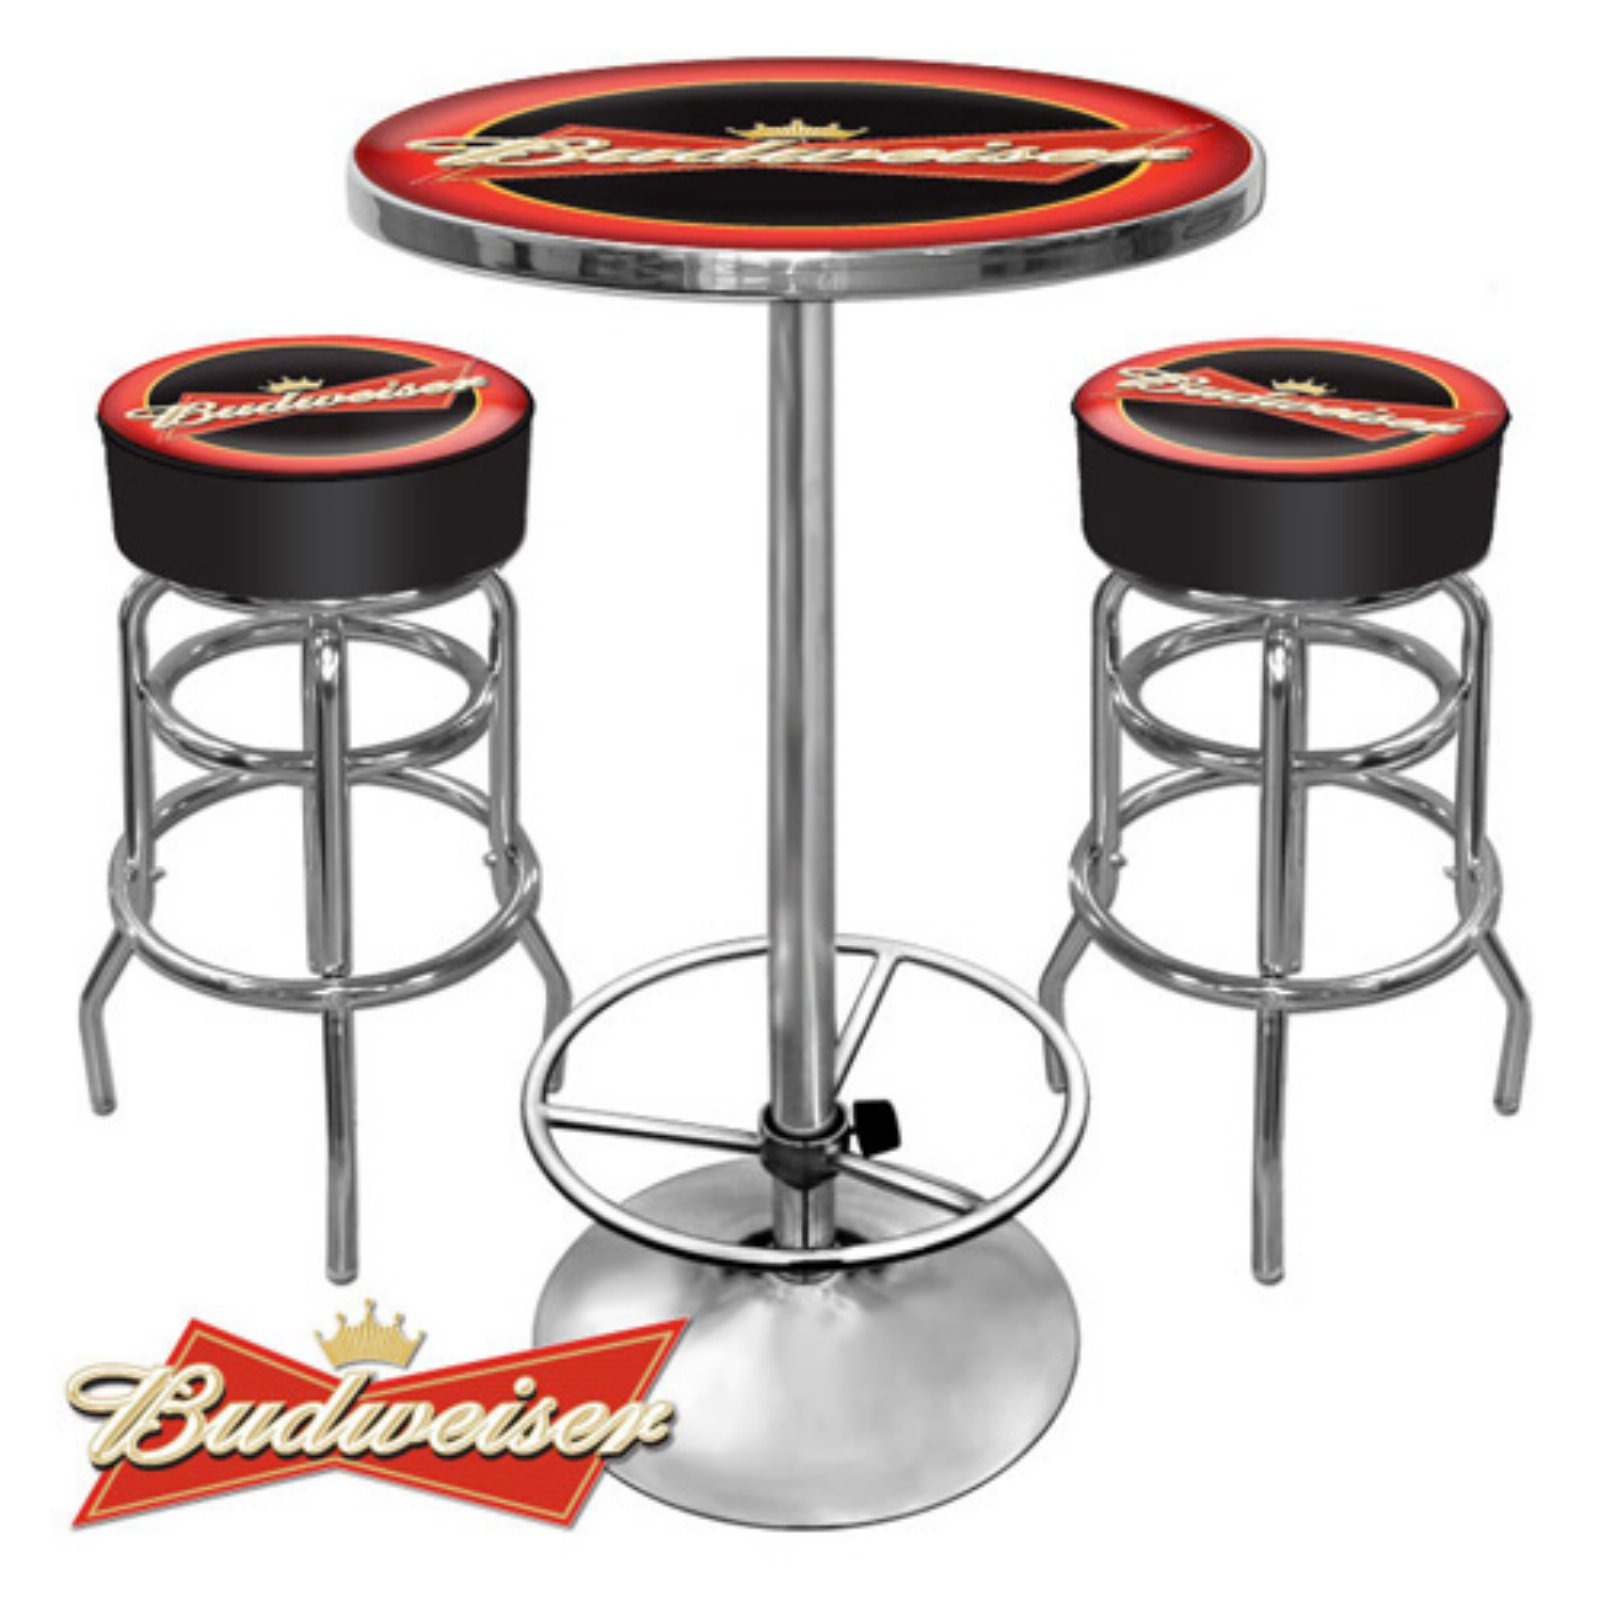 Budweiser Red Black Gameroom Pub Set 3 Piece In 2020 With Images Bar Stool Table Set Pub Table Bar Table And Stools